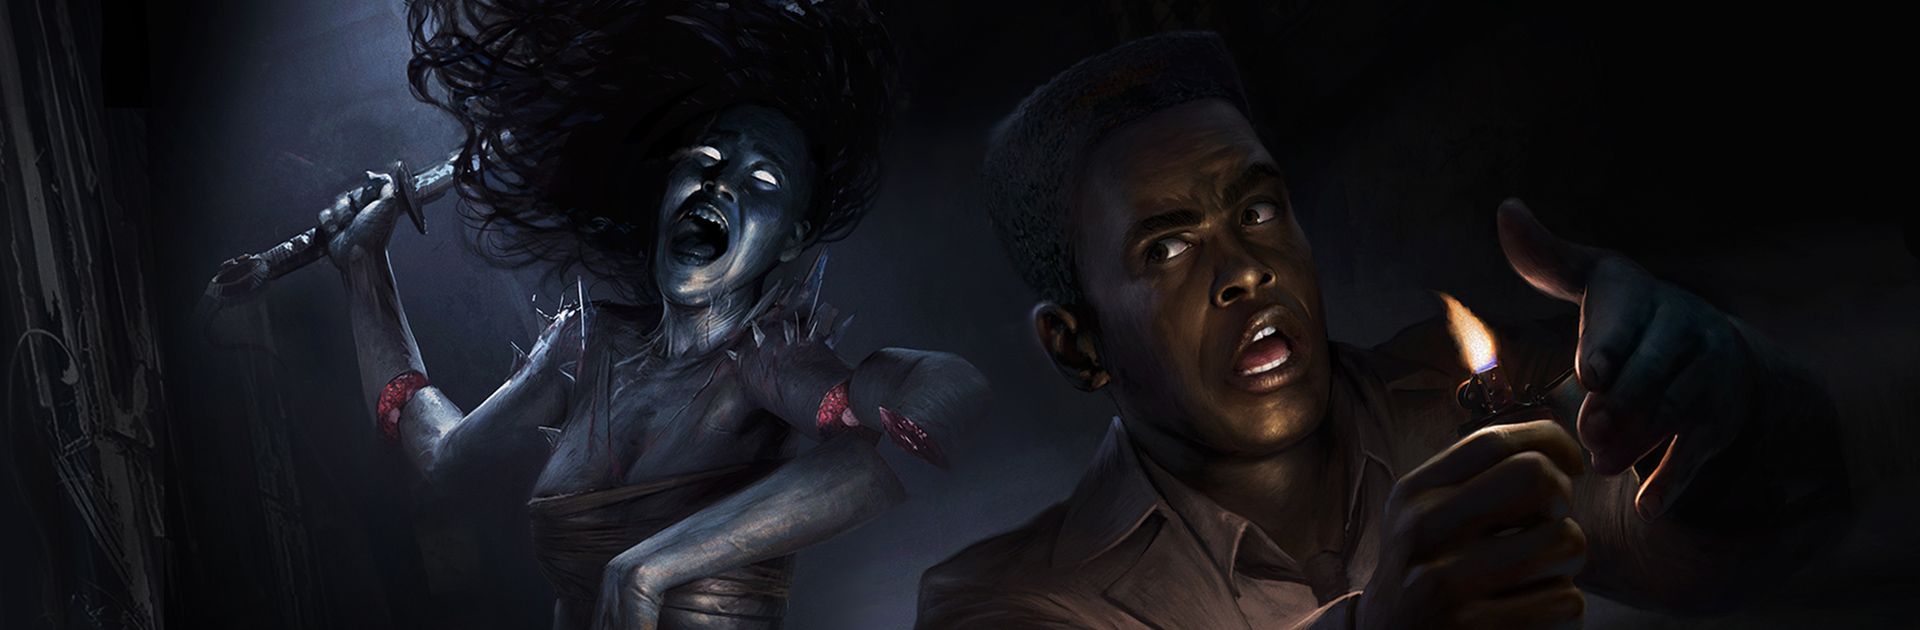 New Dead by Daylight Chapter Out Now